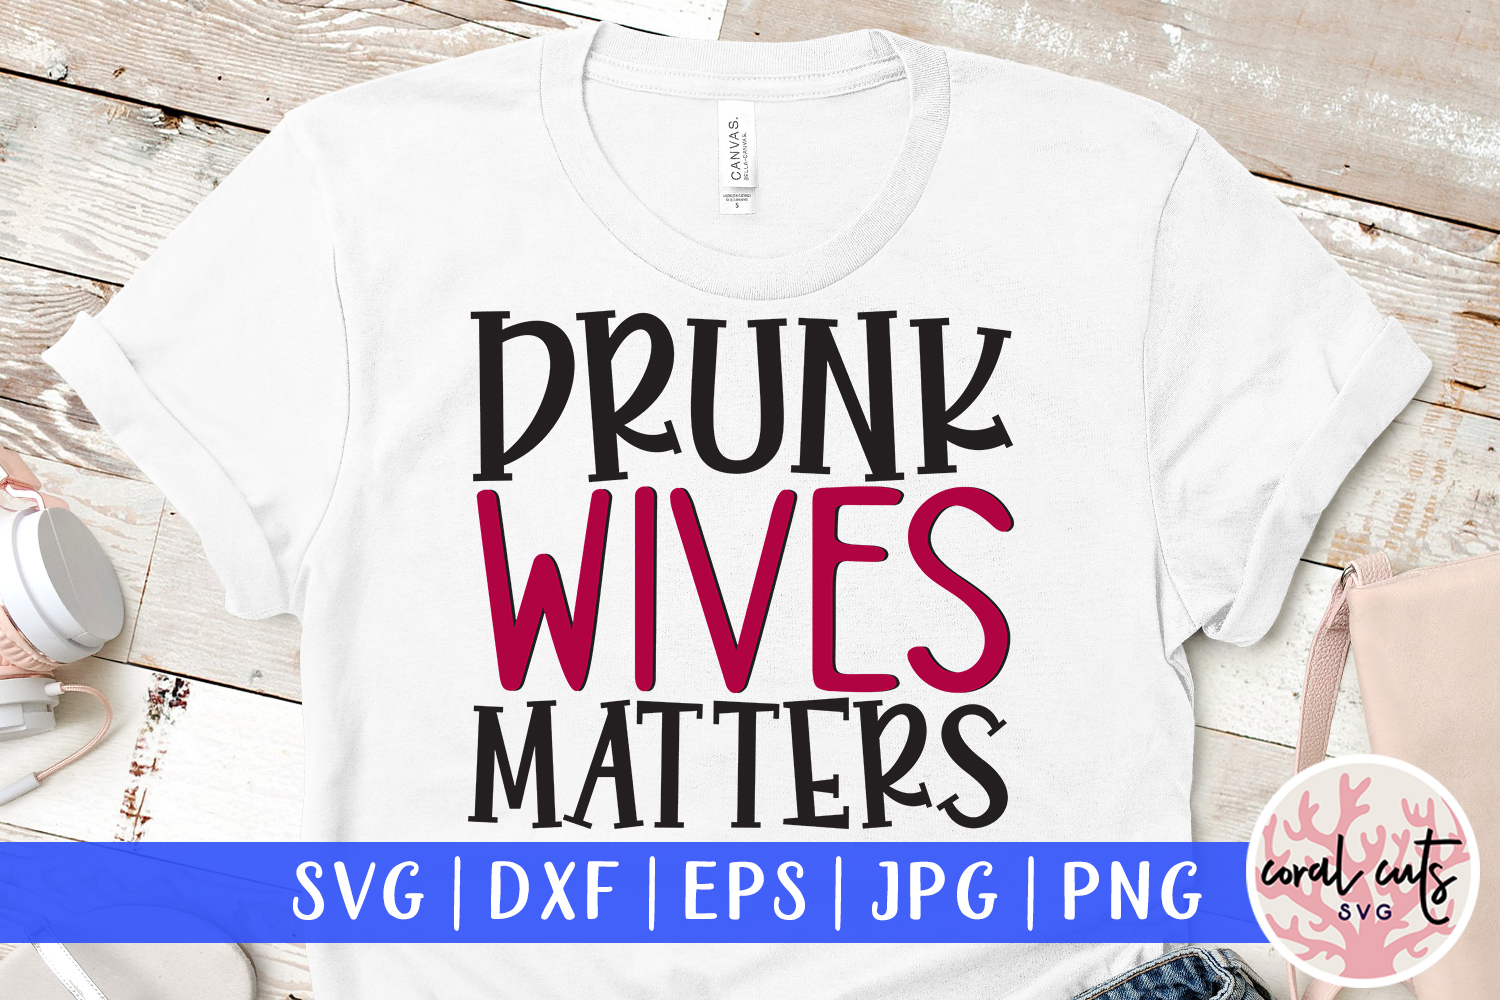 Download Free Drunk Wives Matters Svg Cut File Graphic By Coralcutssvg for Cricut Explore, Silhouette and other cutting machines.